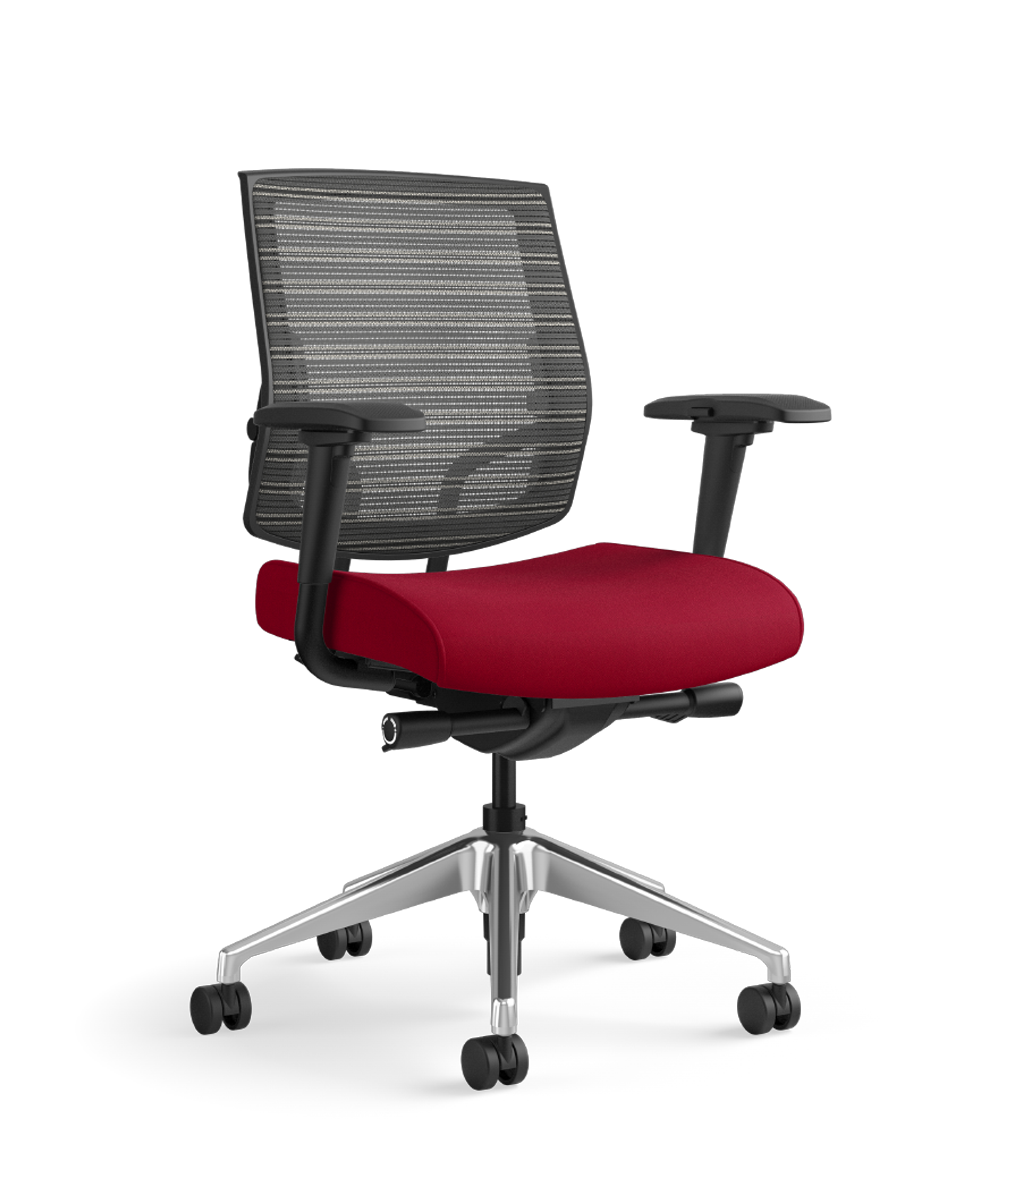 focus task work chairs stools seating sitonit seating